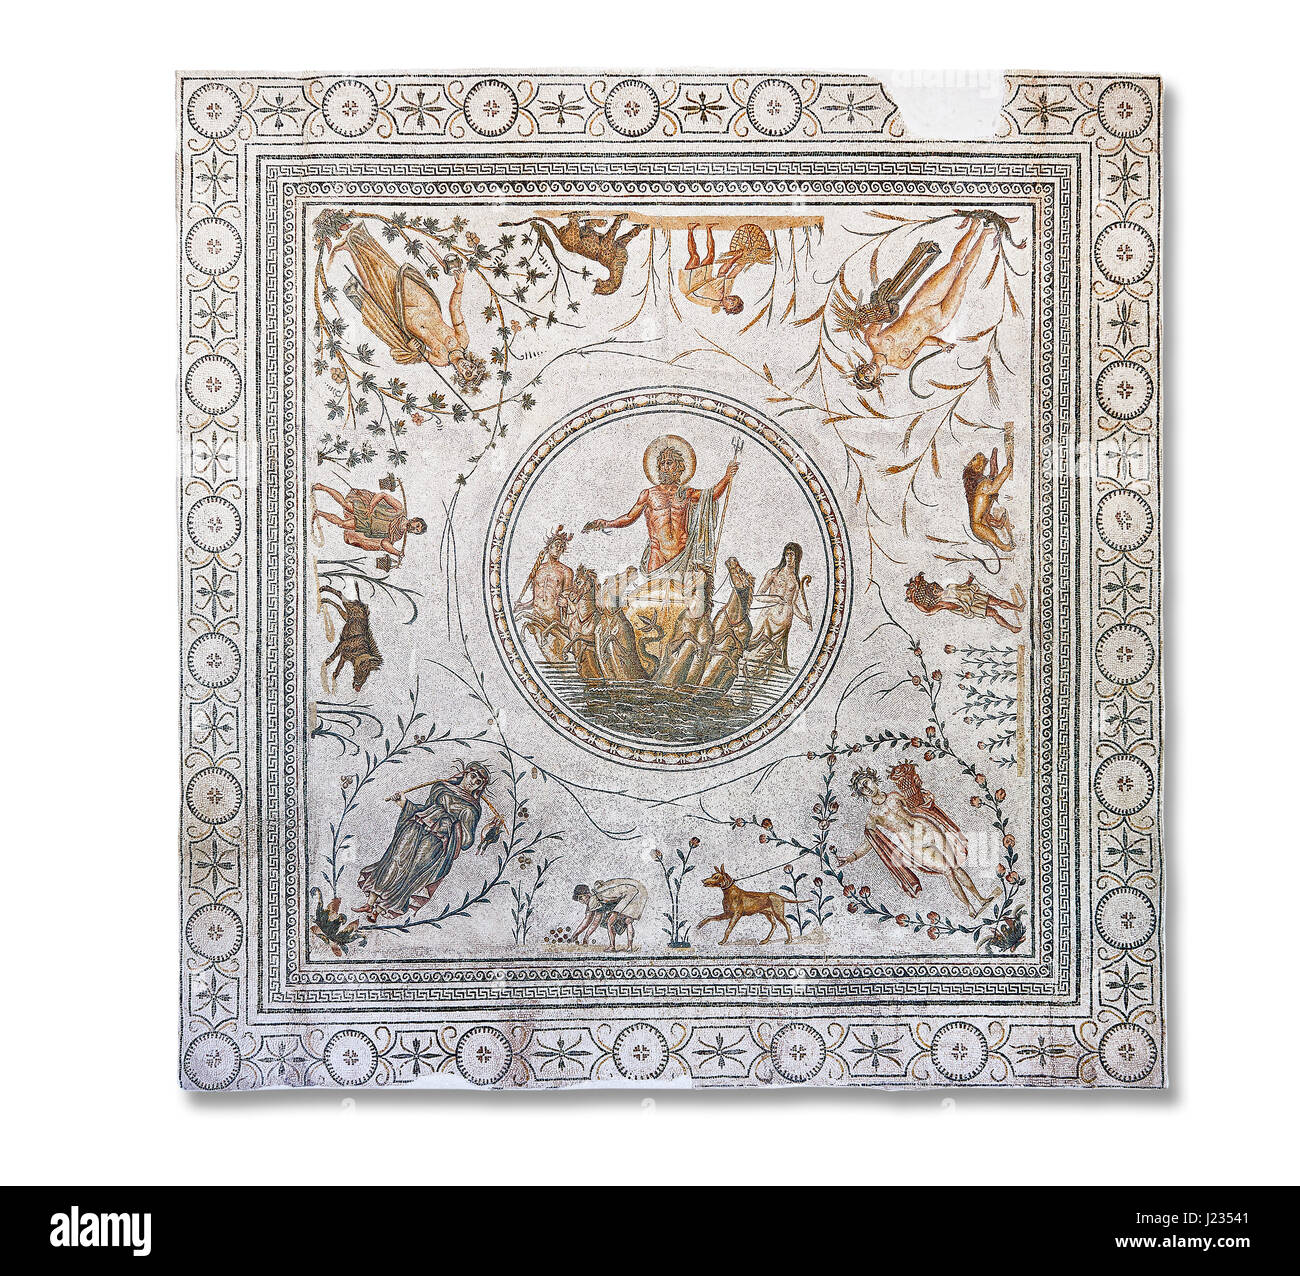 Roman mosaic panel of the Triumph of Neptune and  the mytrhical legend of The Four Seasons. From Caput Vada (La - Stock Image